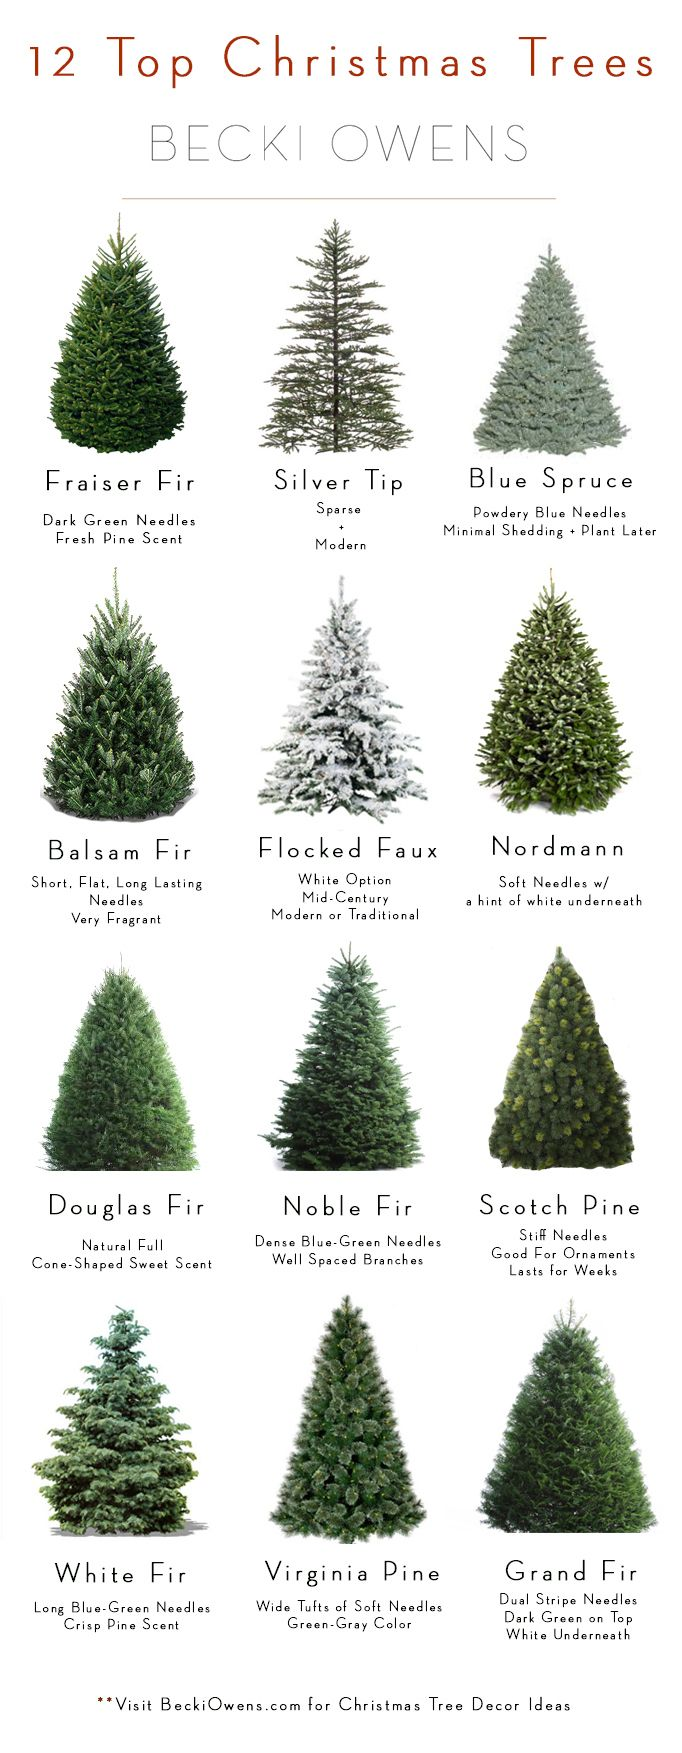 Types Of Christmas Trees.All About Christmas Trees Guide Decoratingbecki Owens